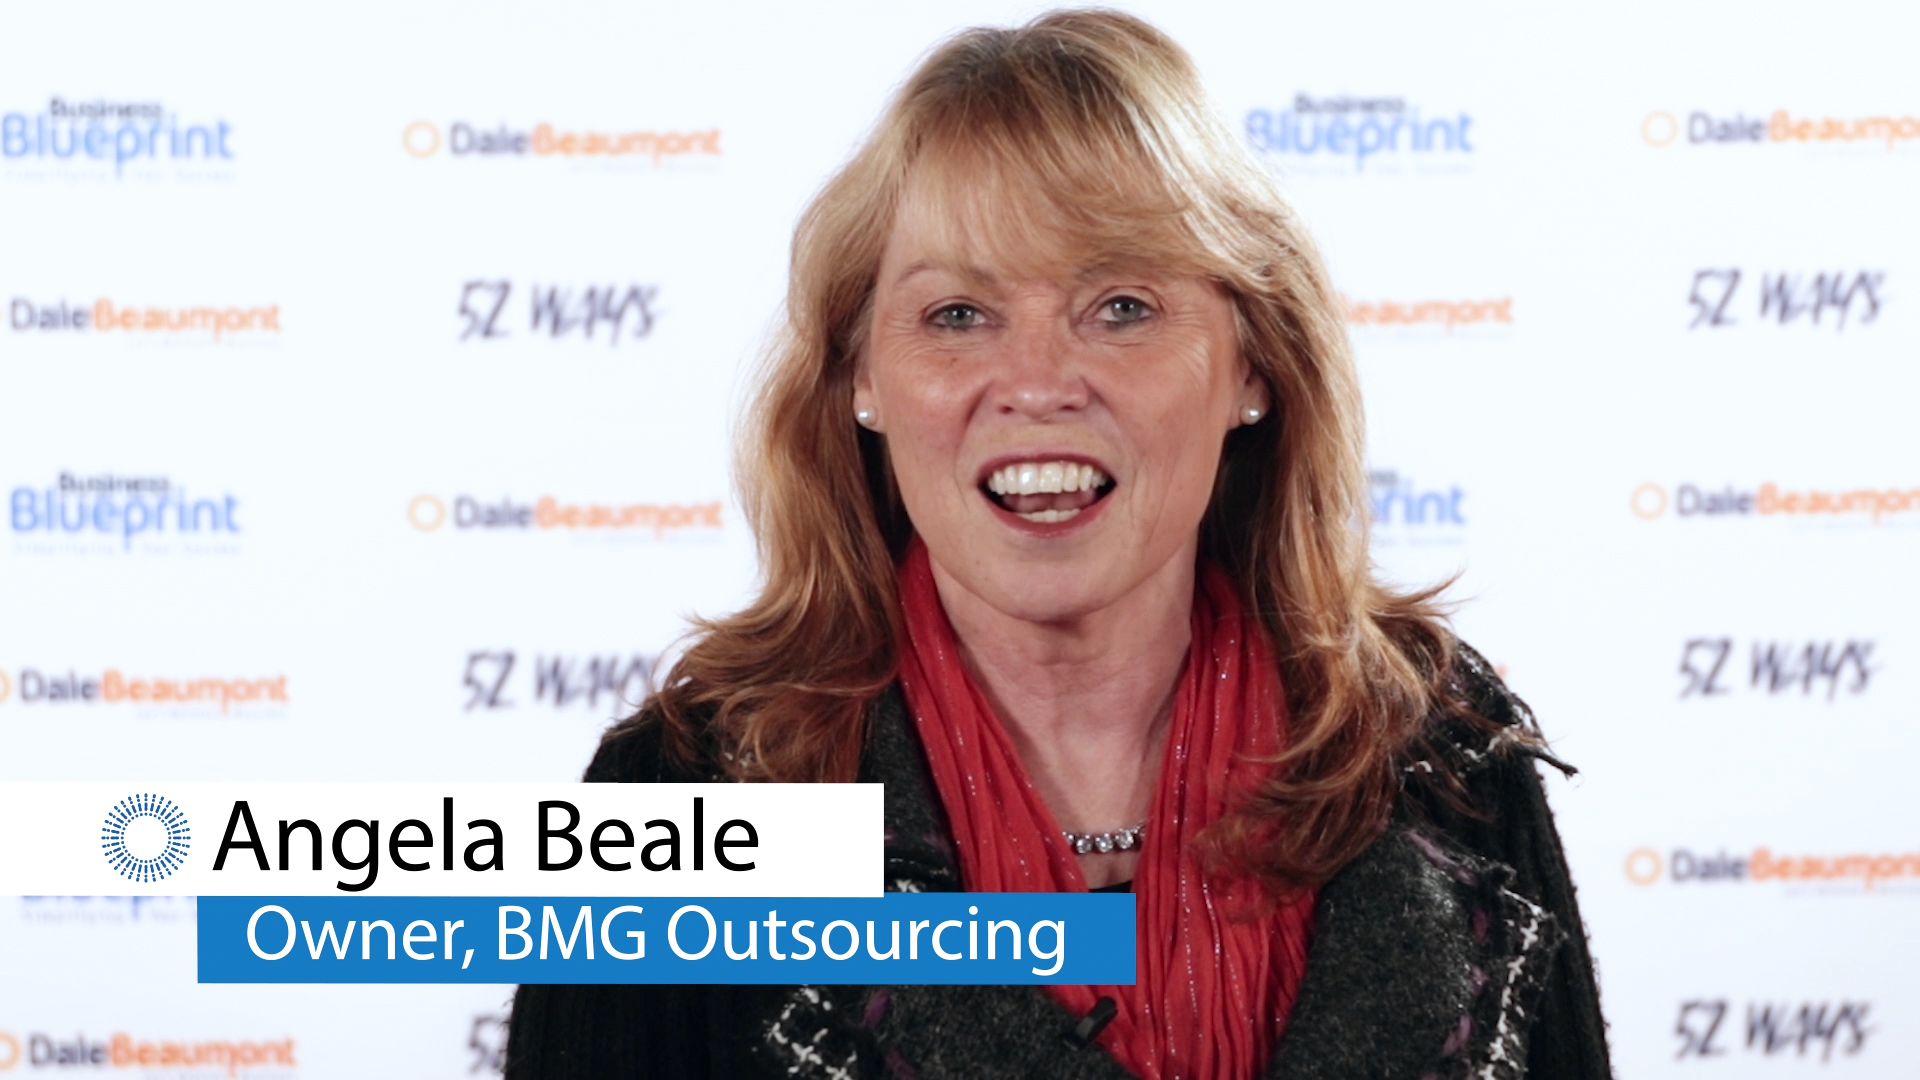 Angela Beale BMG Outsourcing video.mp4